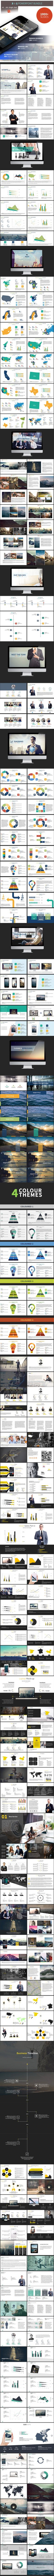 3 in 1 Bestsellers Powerpoint Presentation Bundle Tempaltes #design Download: http://graphicriver.net/item/3-in-1-bestsellers-powerpoint-presentation-bundle/11766235?ref=ksioks